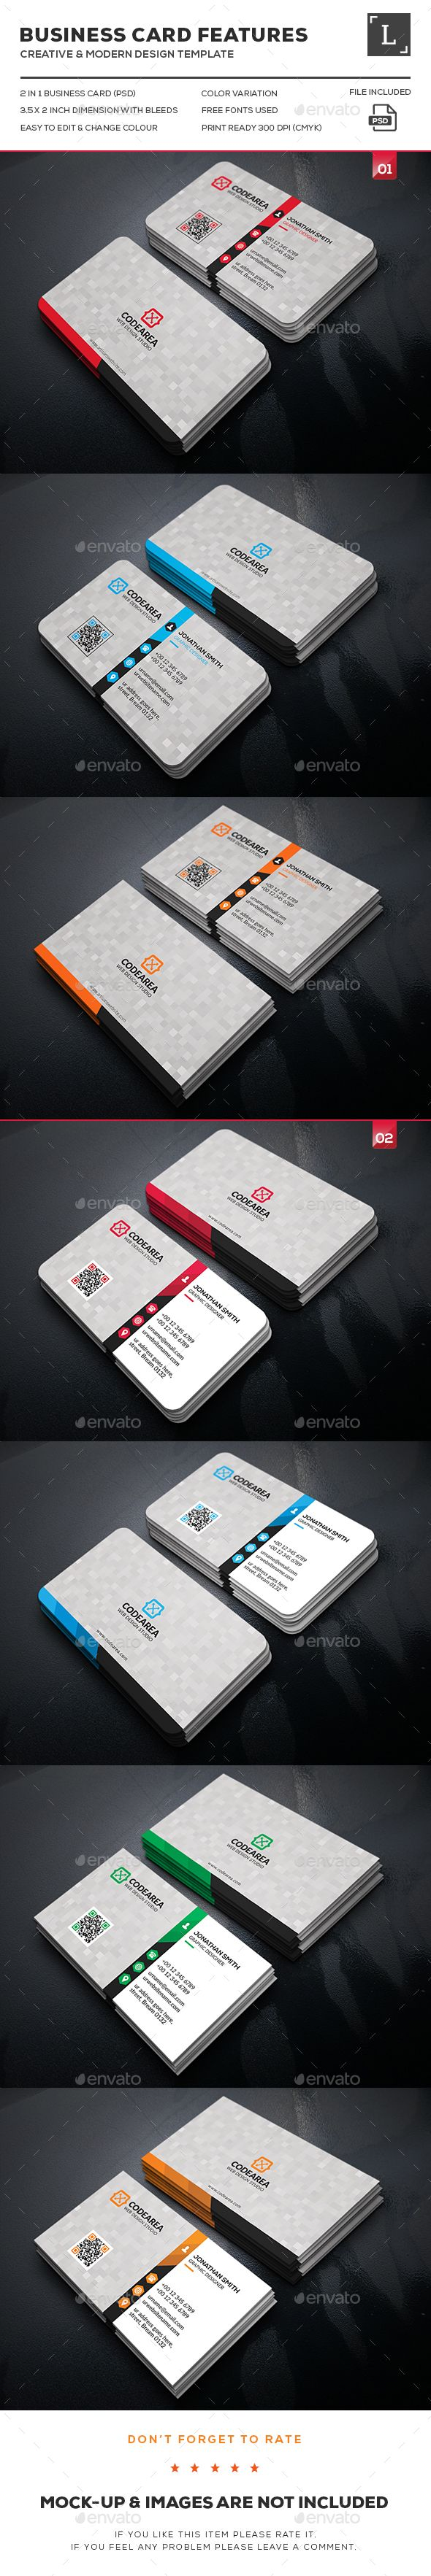 64 best corporate business card images on pinterest